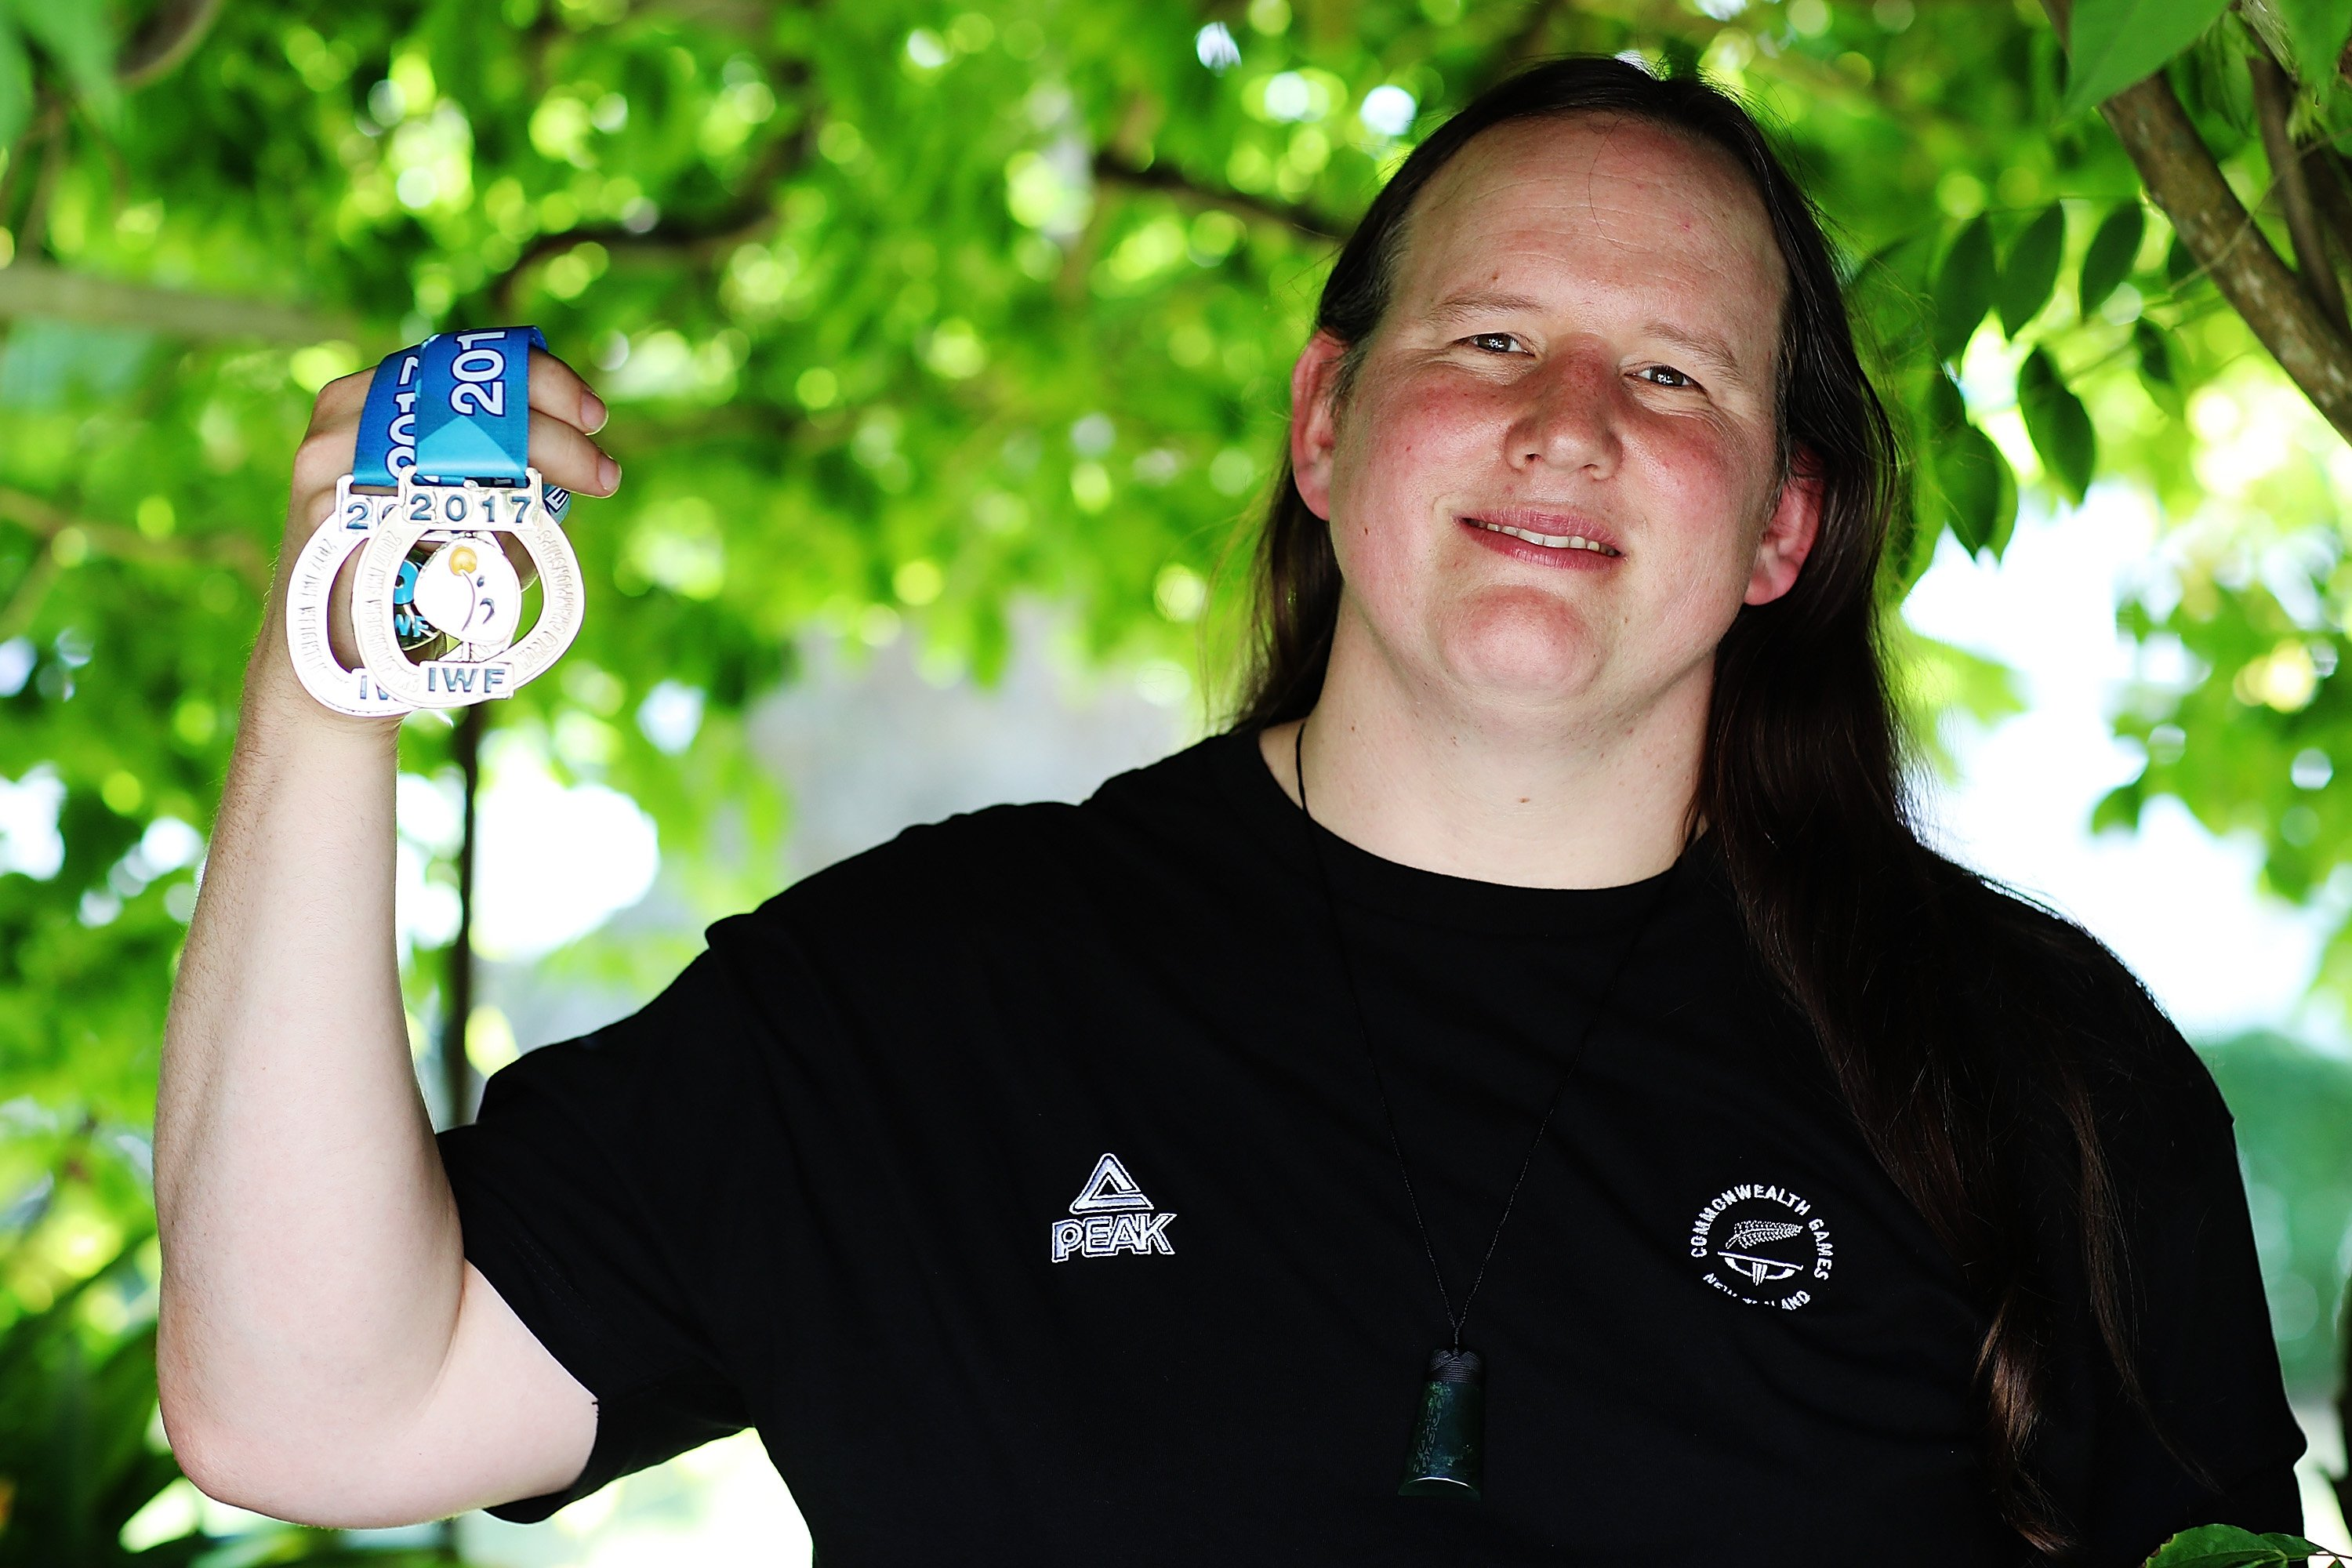 Transgender weightlifter Laurel Hubbard posing with two of her medals during a photoshoot in Auckland, New Zealand | Photo: Hannah Peters/Getty Images